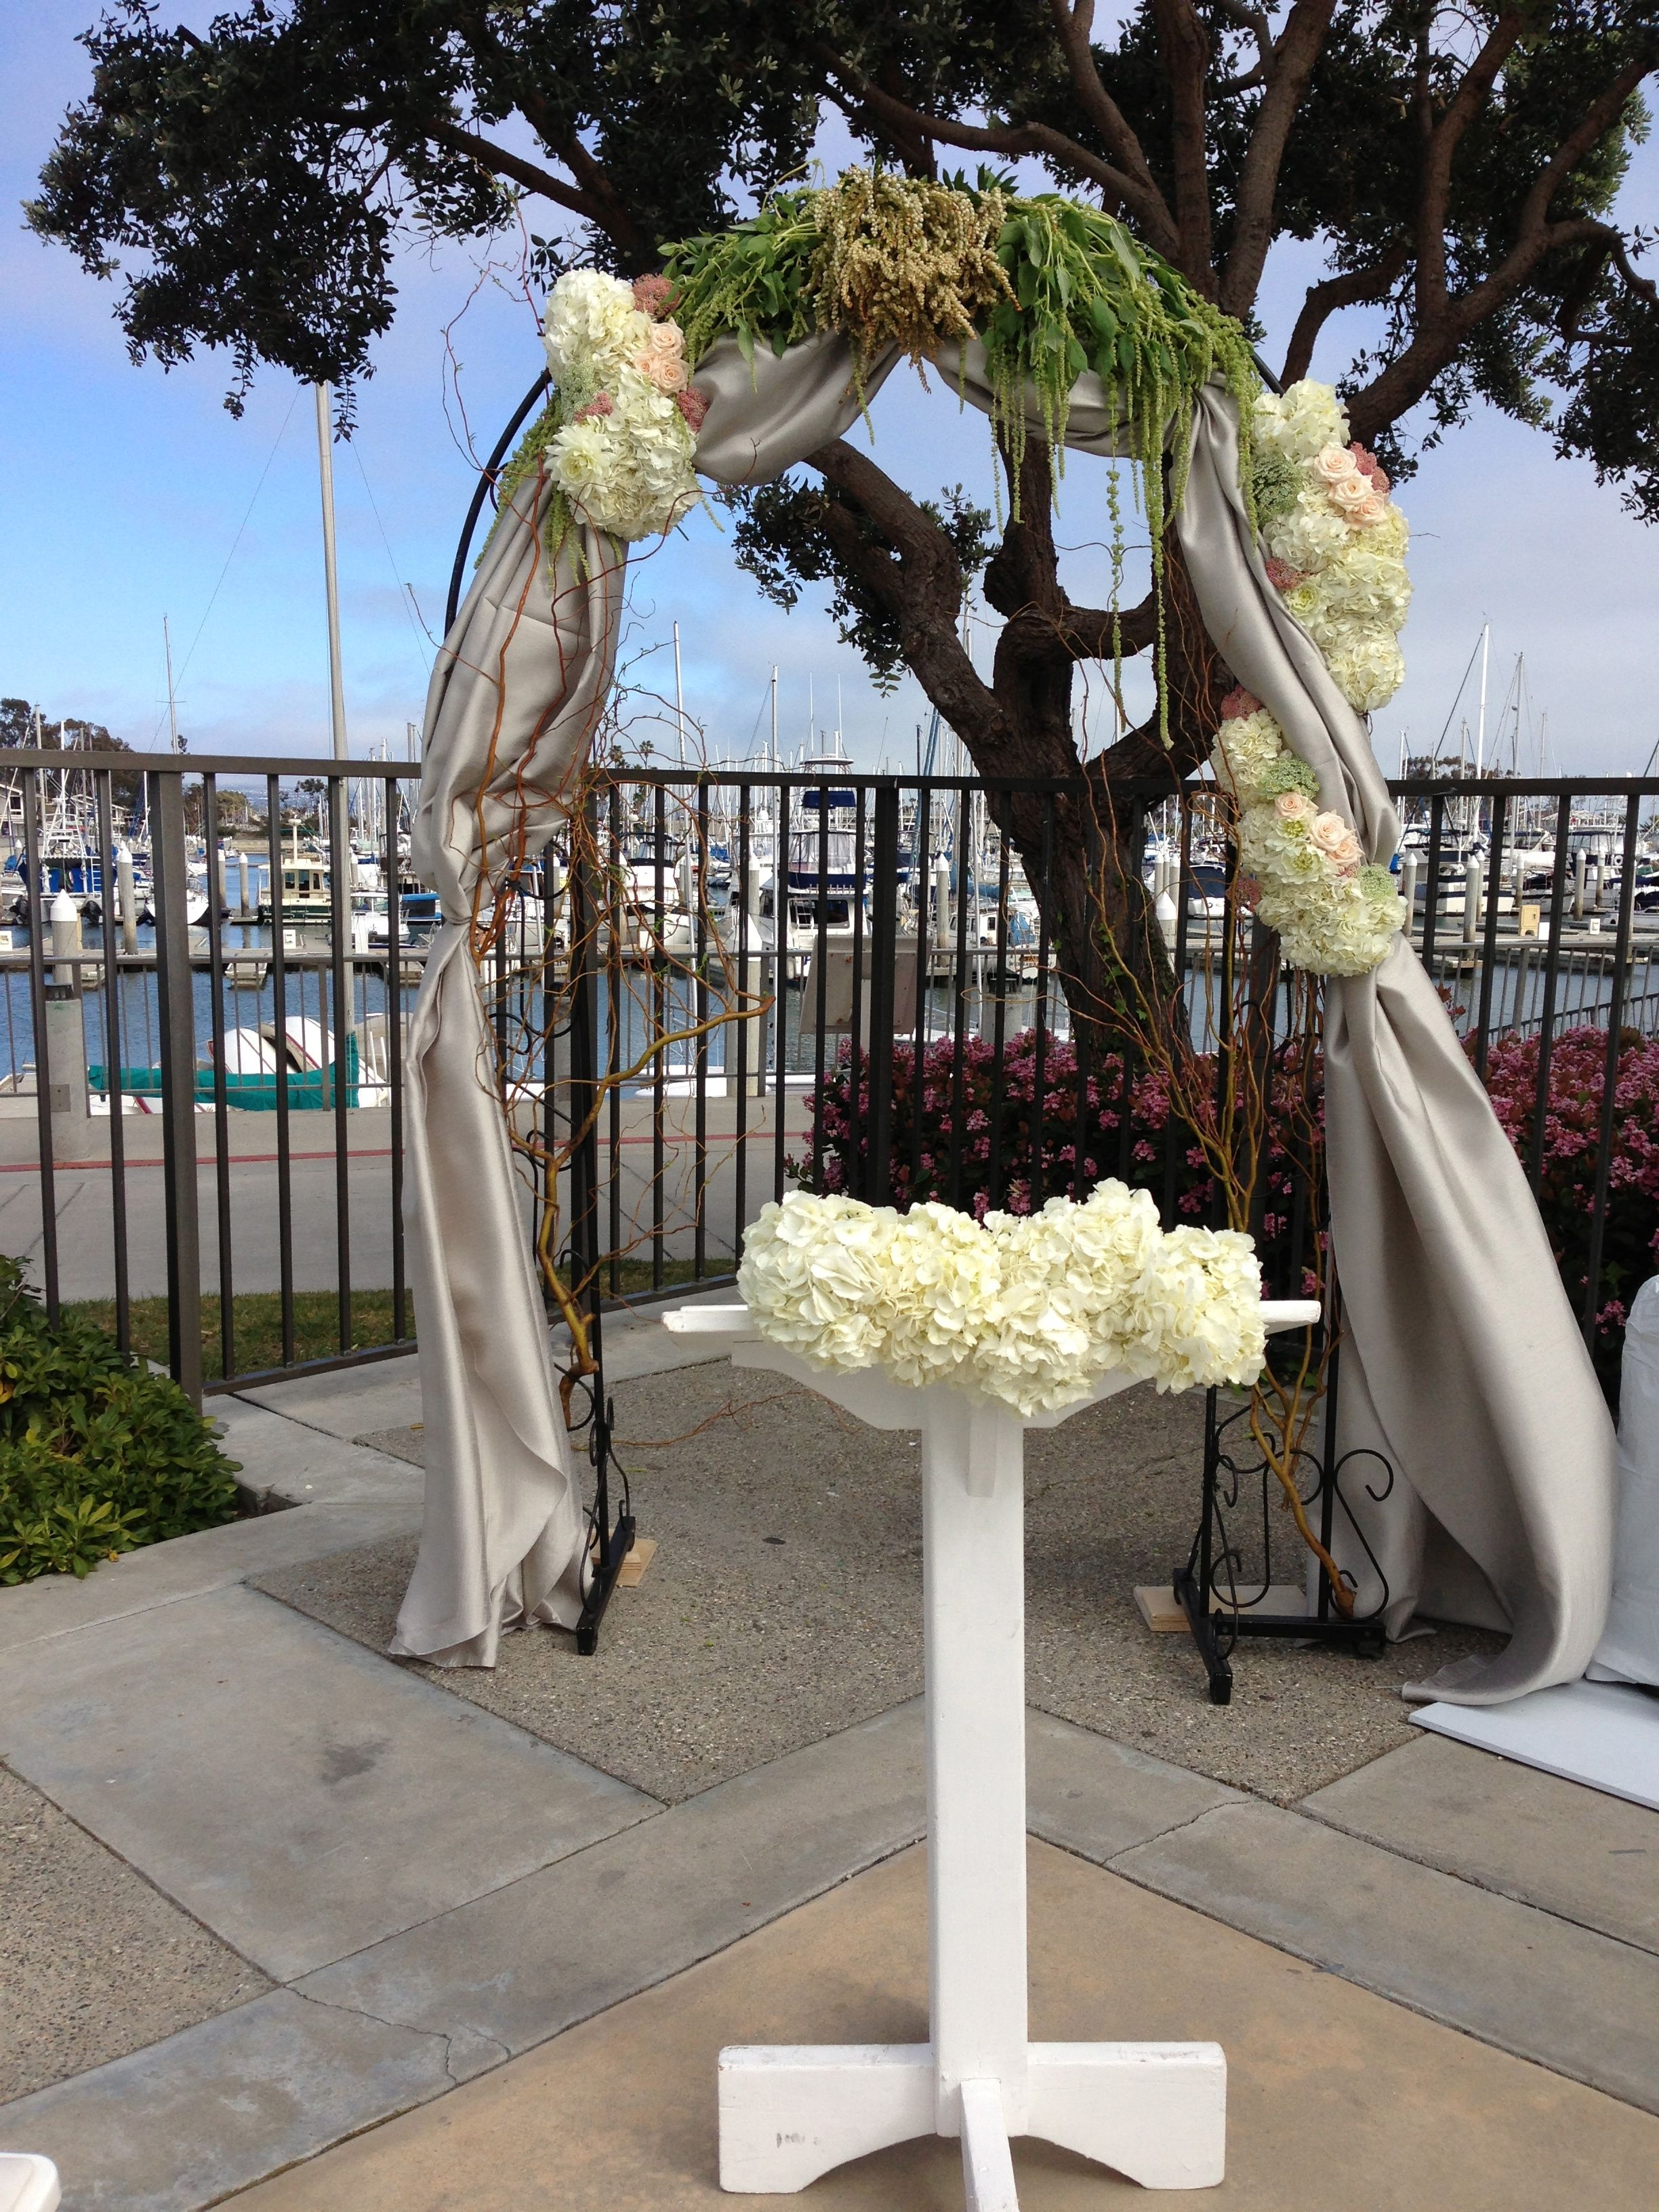 Rustic Wedding Arch Draped Fabric And Fresh Flowers White And Green With Curly Willow